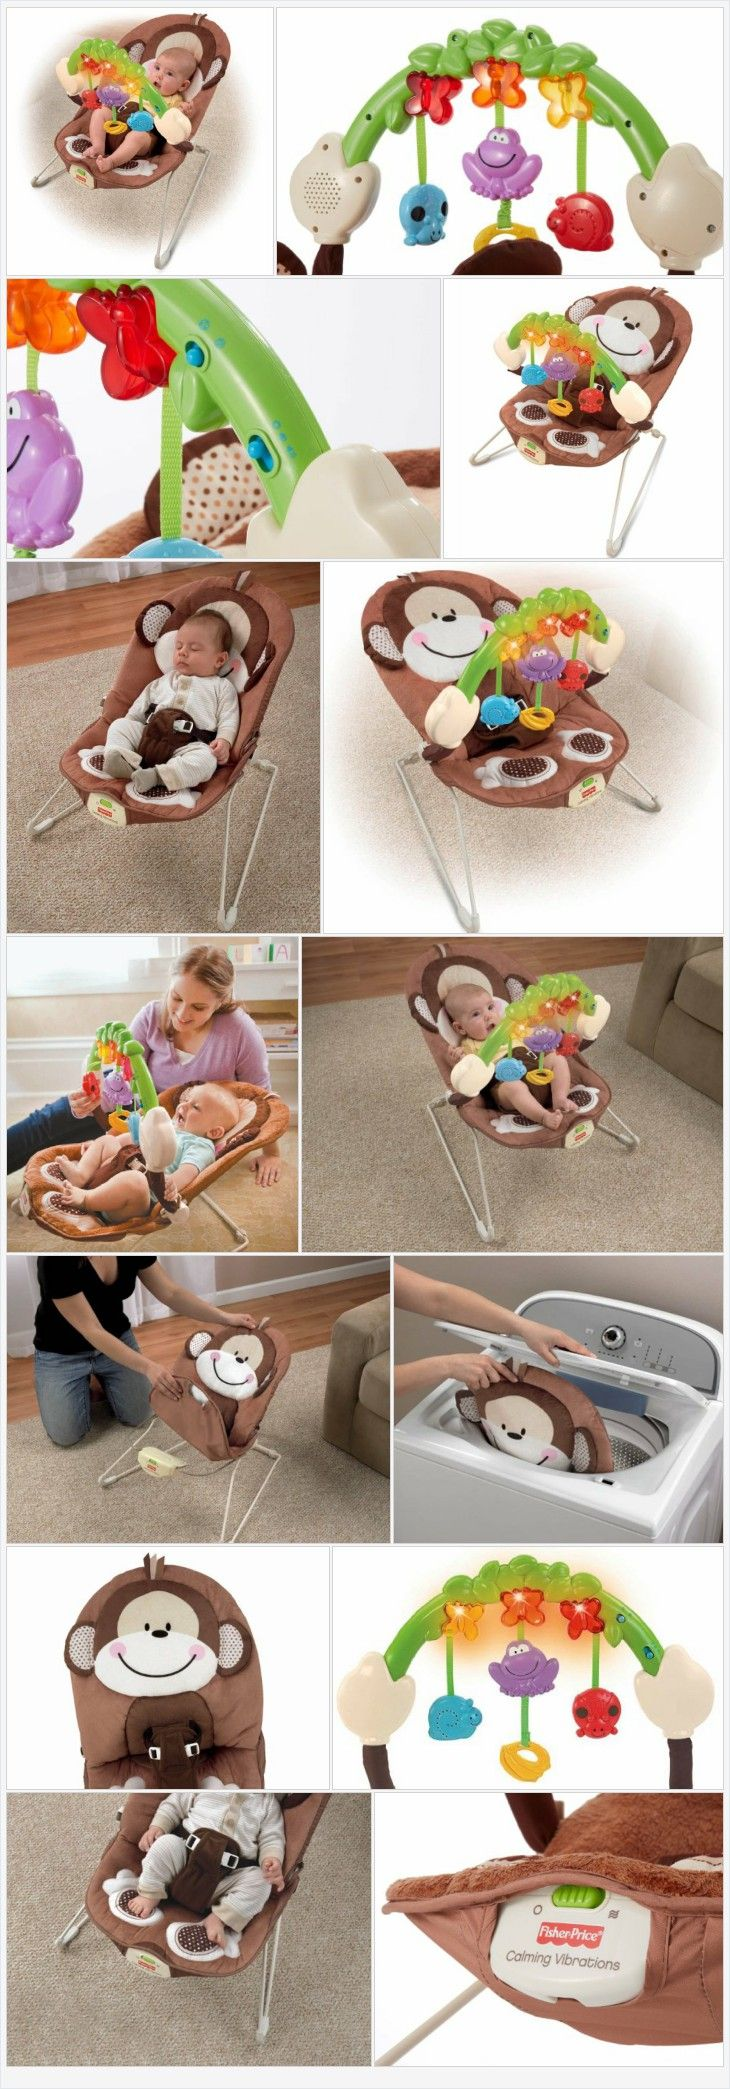 Uncategorized fisher price comfort curve bouncer new free shipping ebay - Fisher Price Deluxe Monkey Bouncer Every Thing Baby